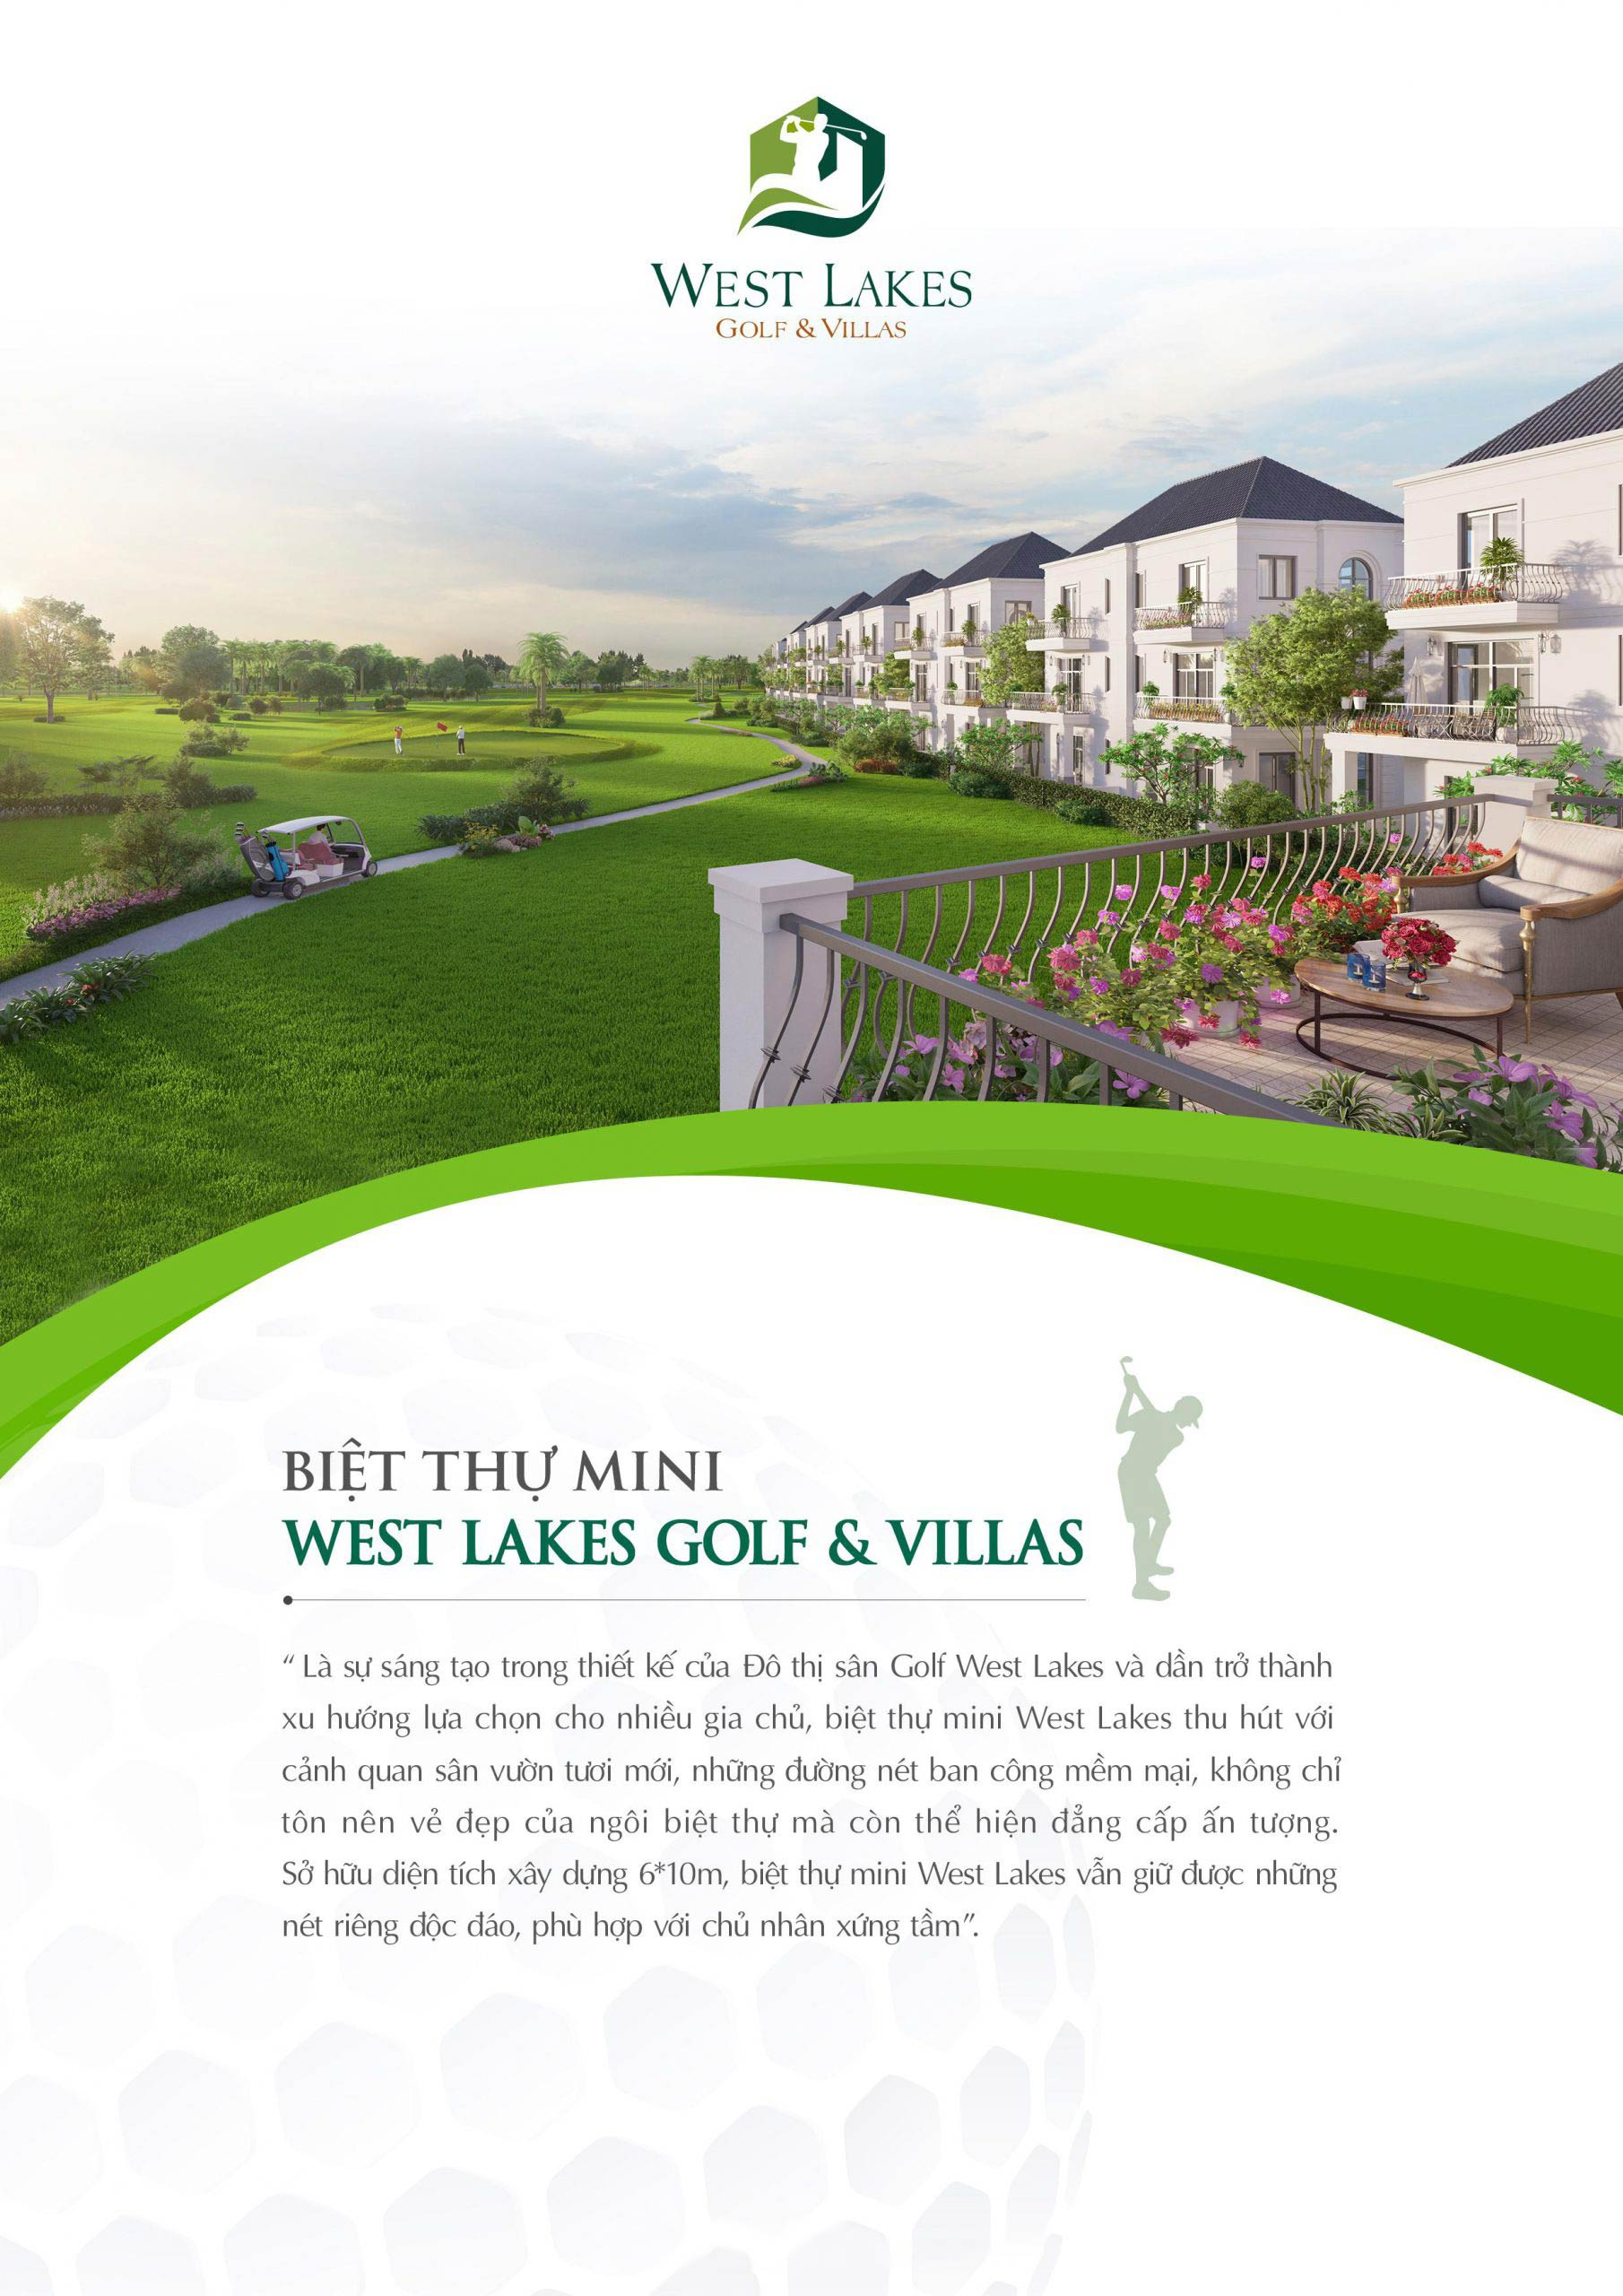 Biệt thự mini West Lakes Golf & Villas Long An 001